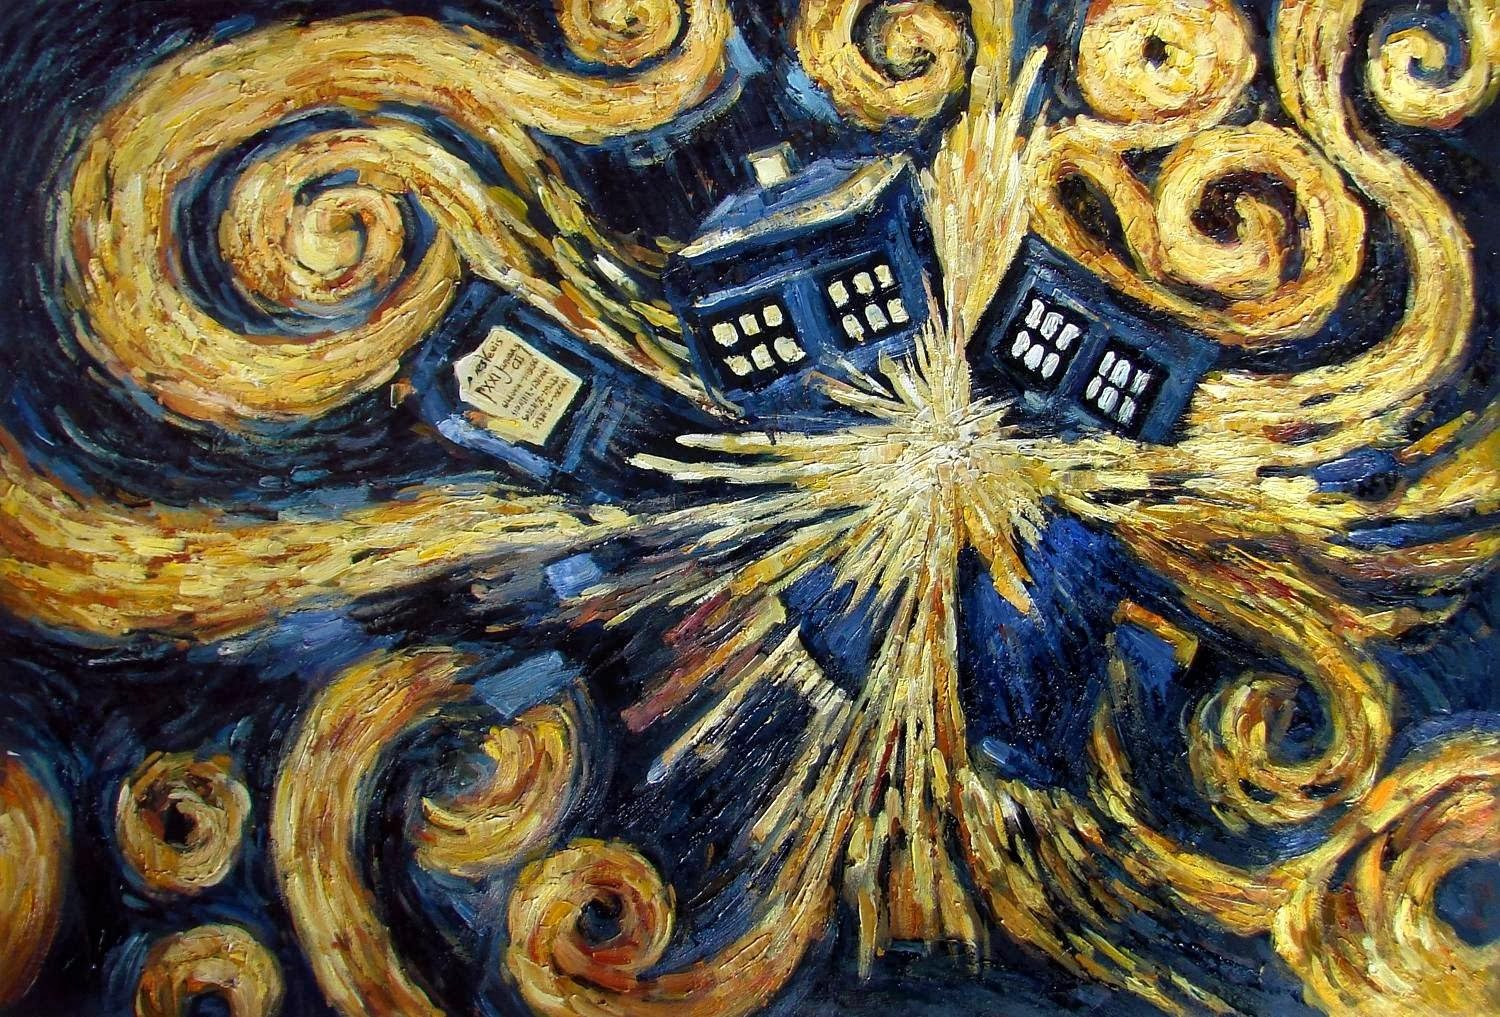 Van Gogh Tardis Wallpaper From the pandorica opens 1500x1017